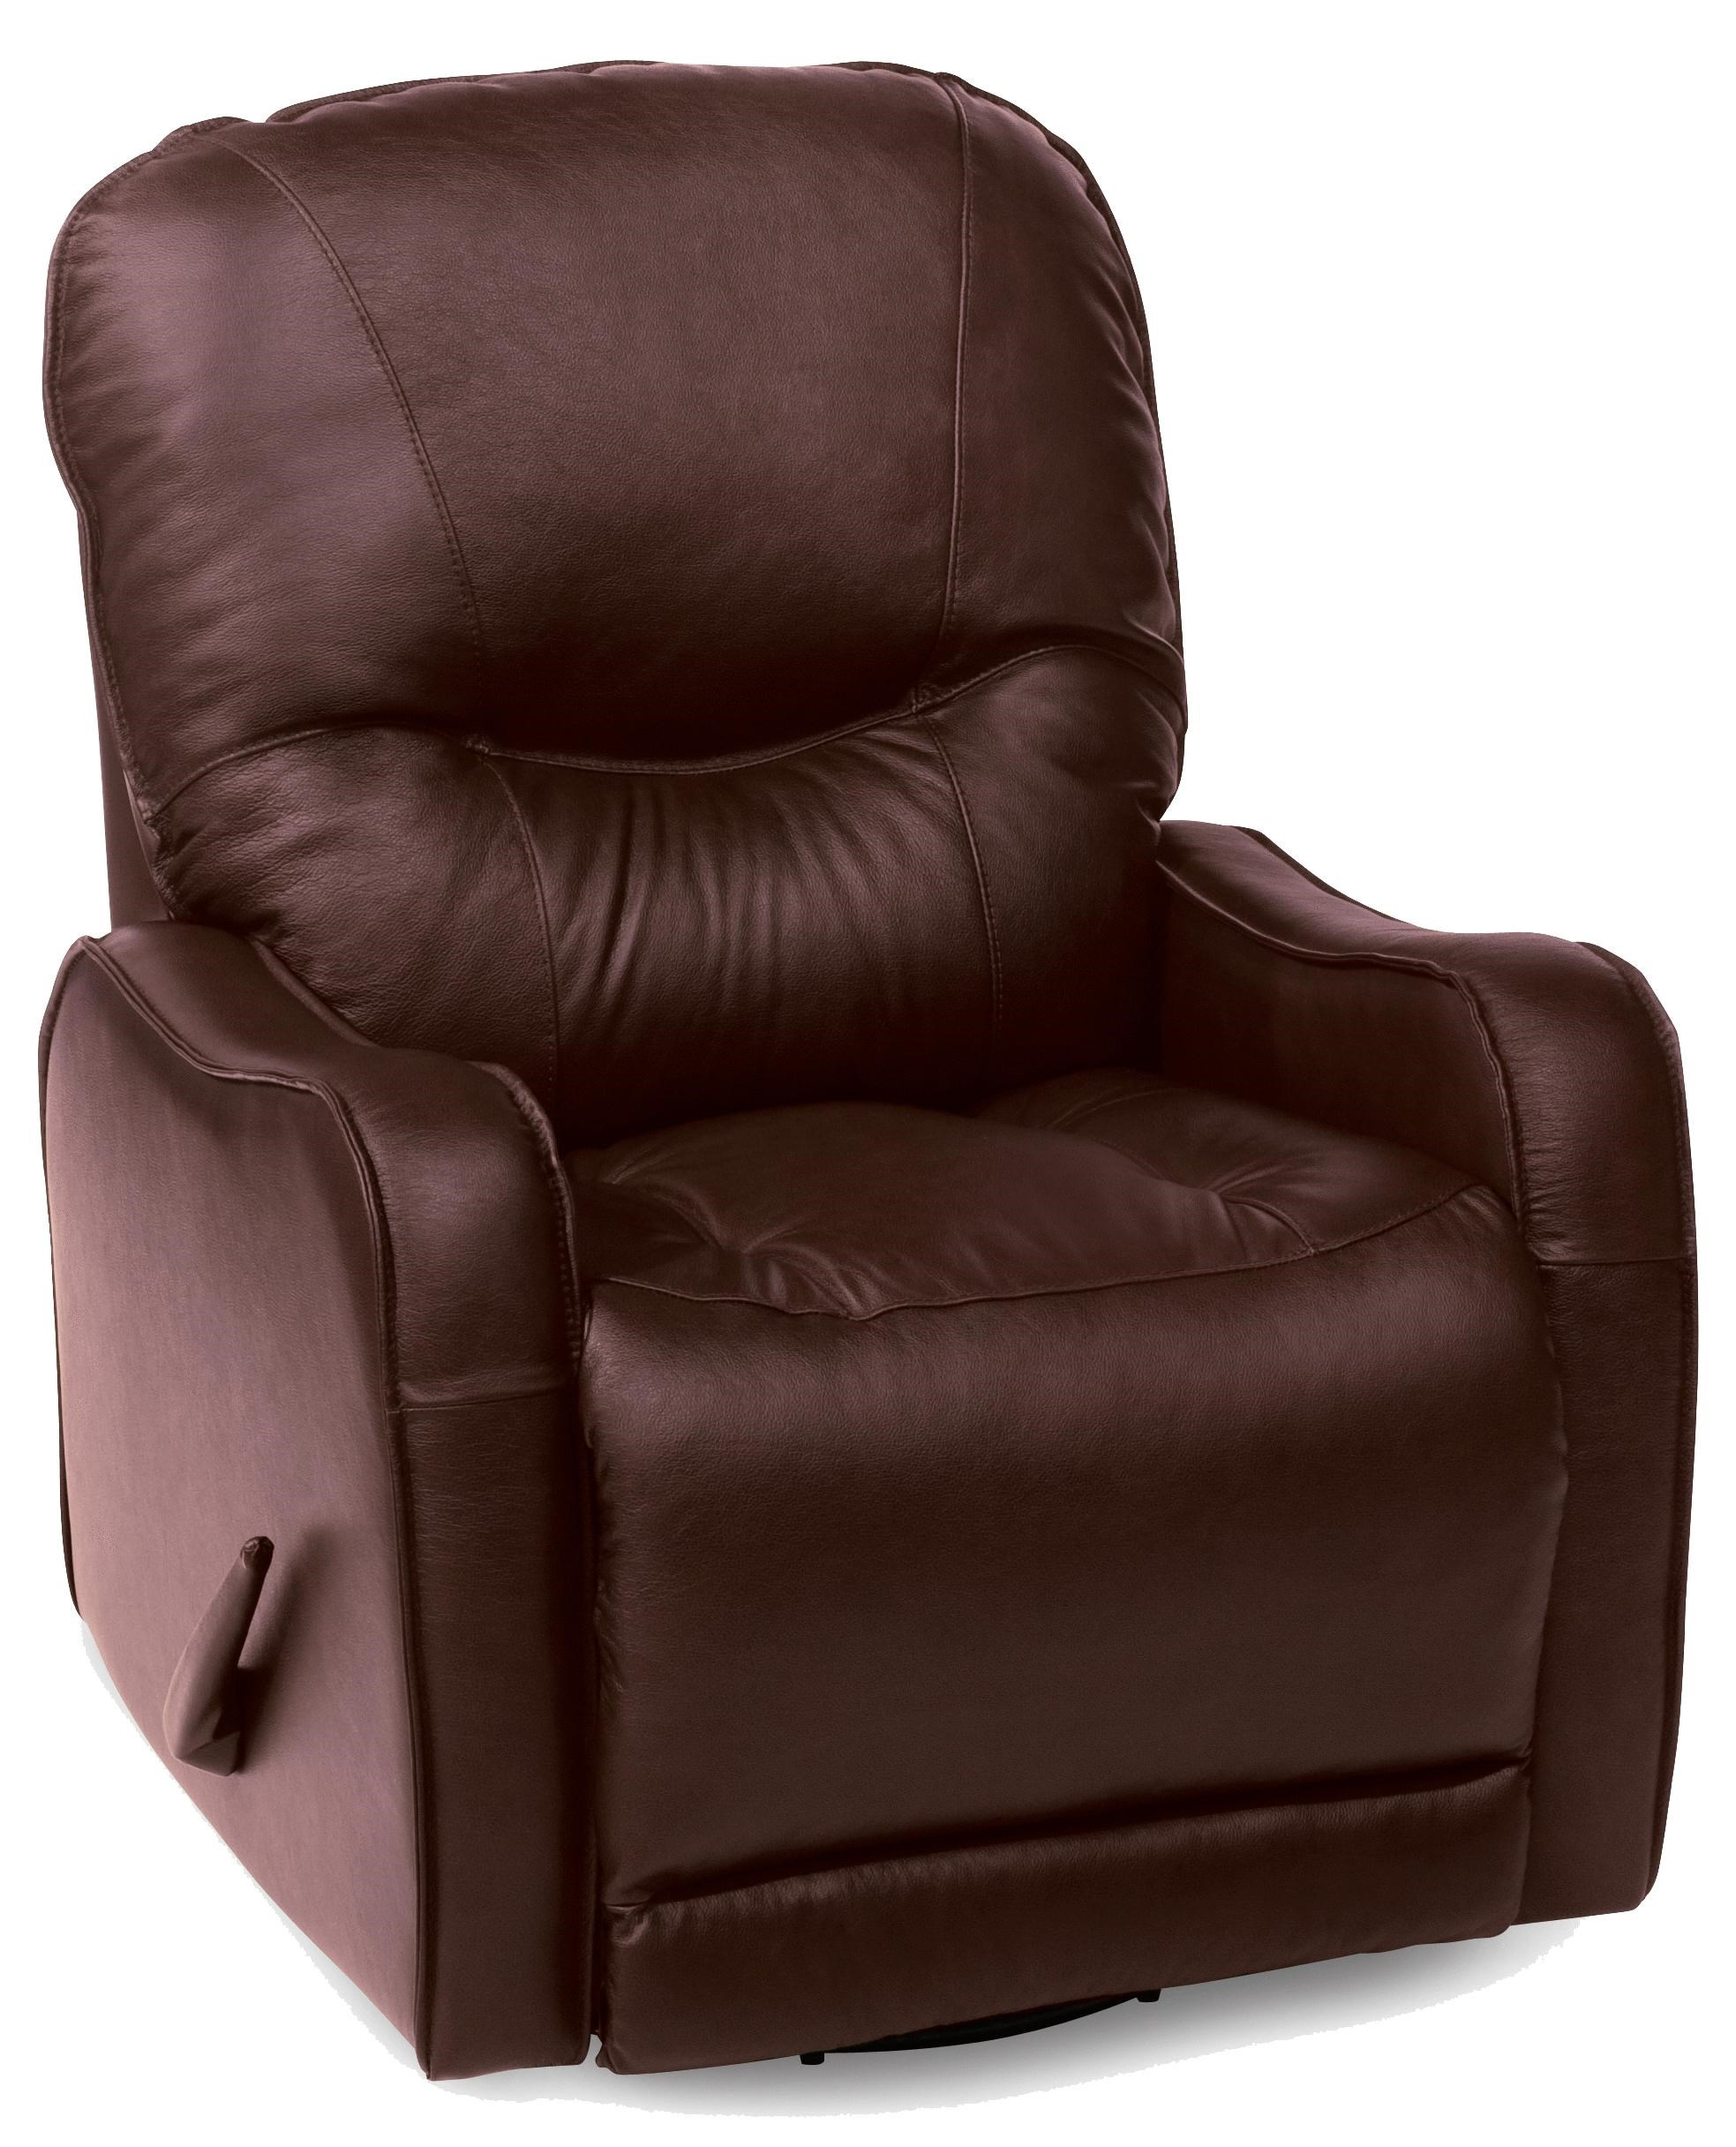 Casual Power Rocker Recliner with Sloped Track Arms